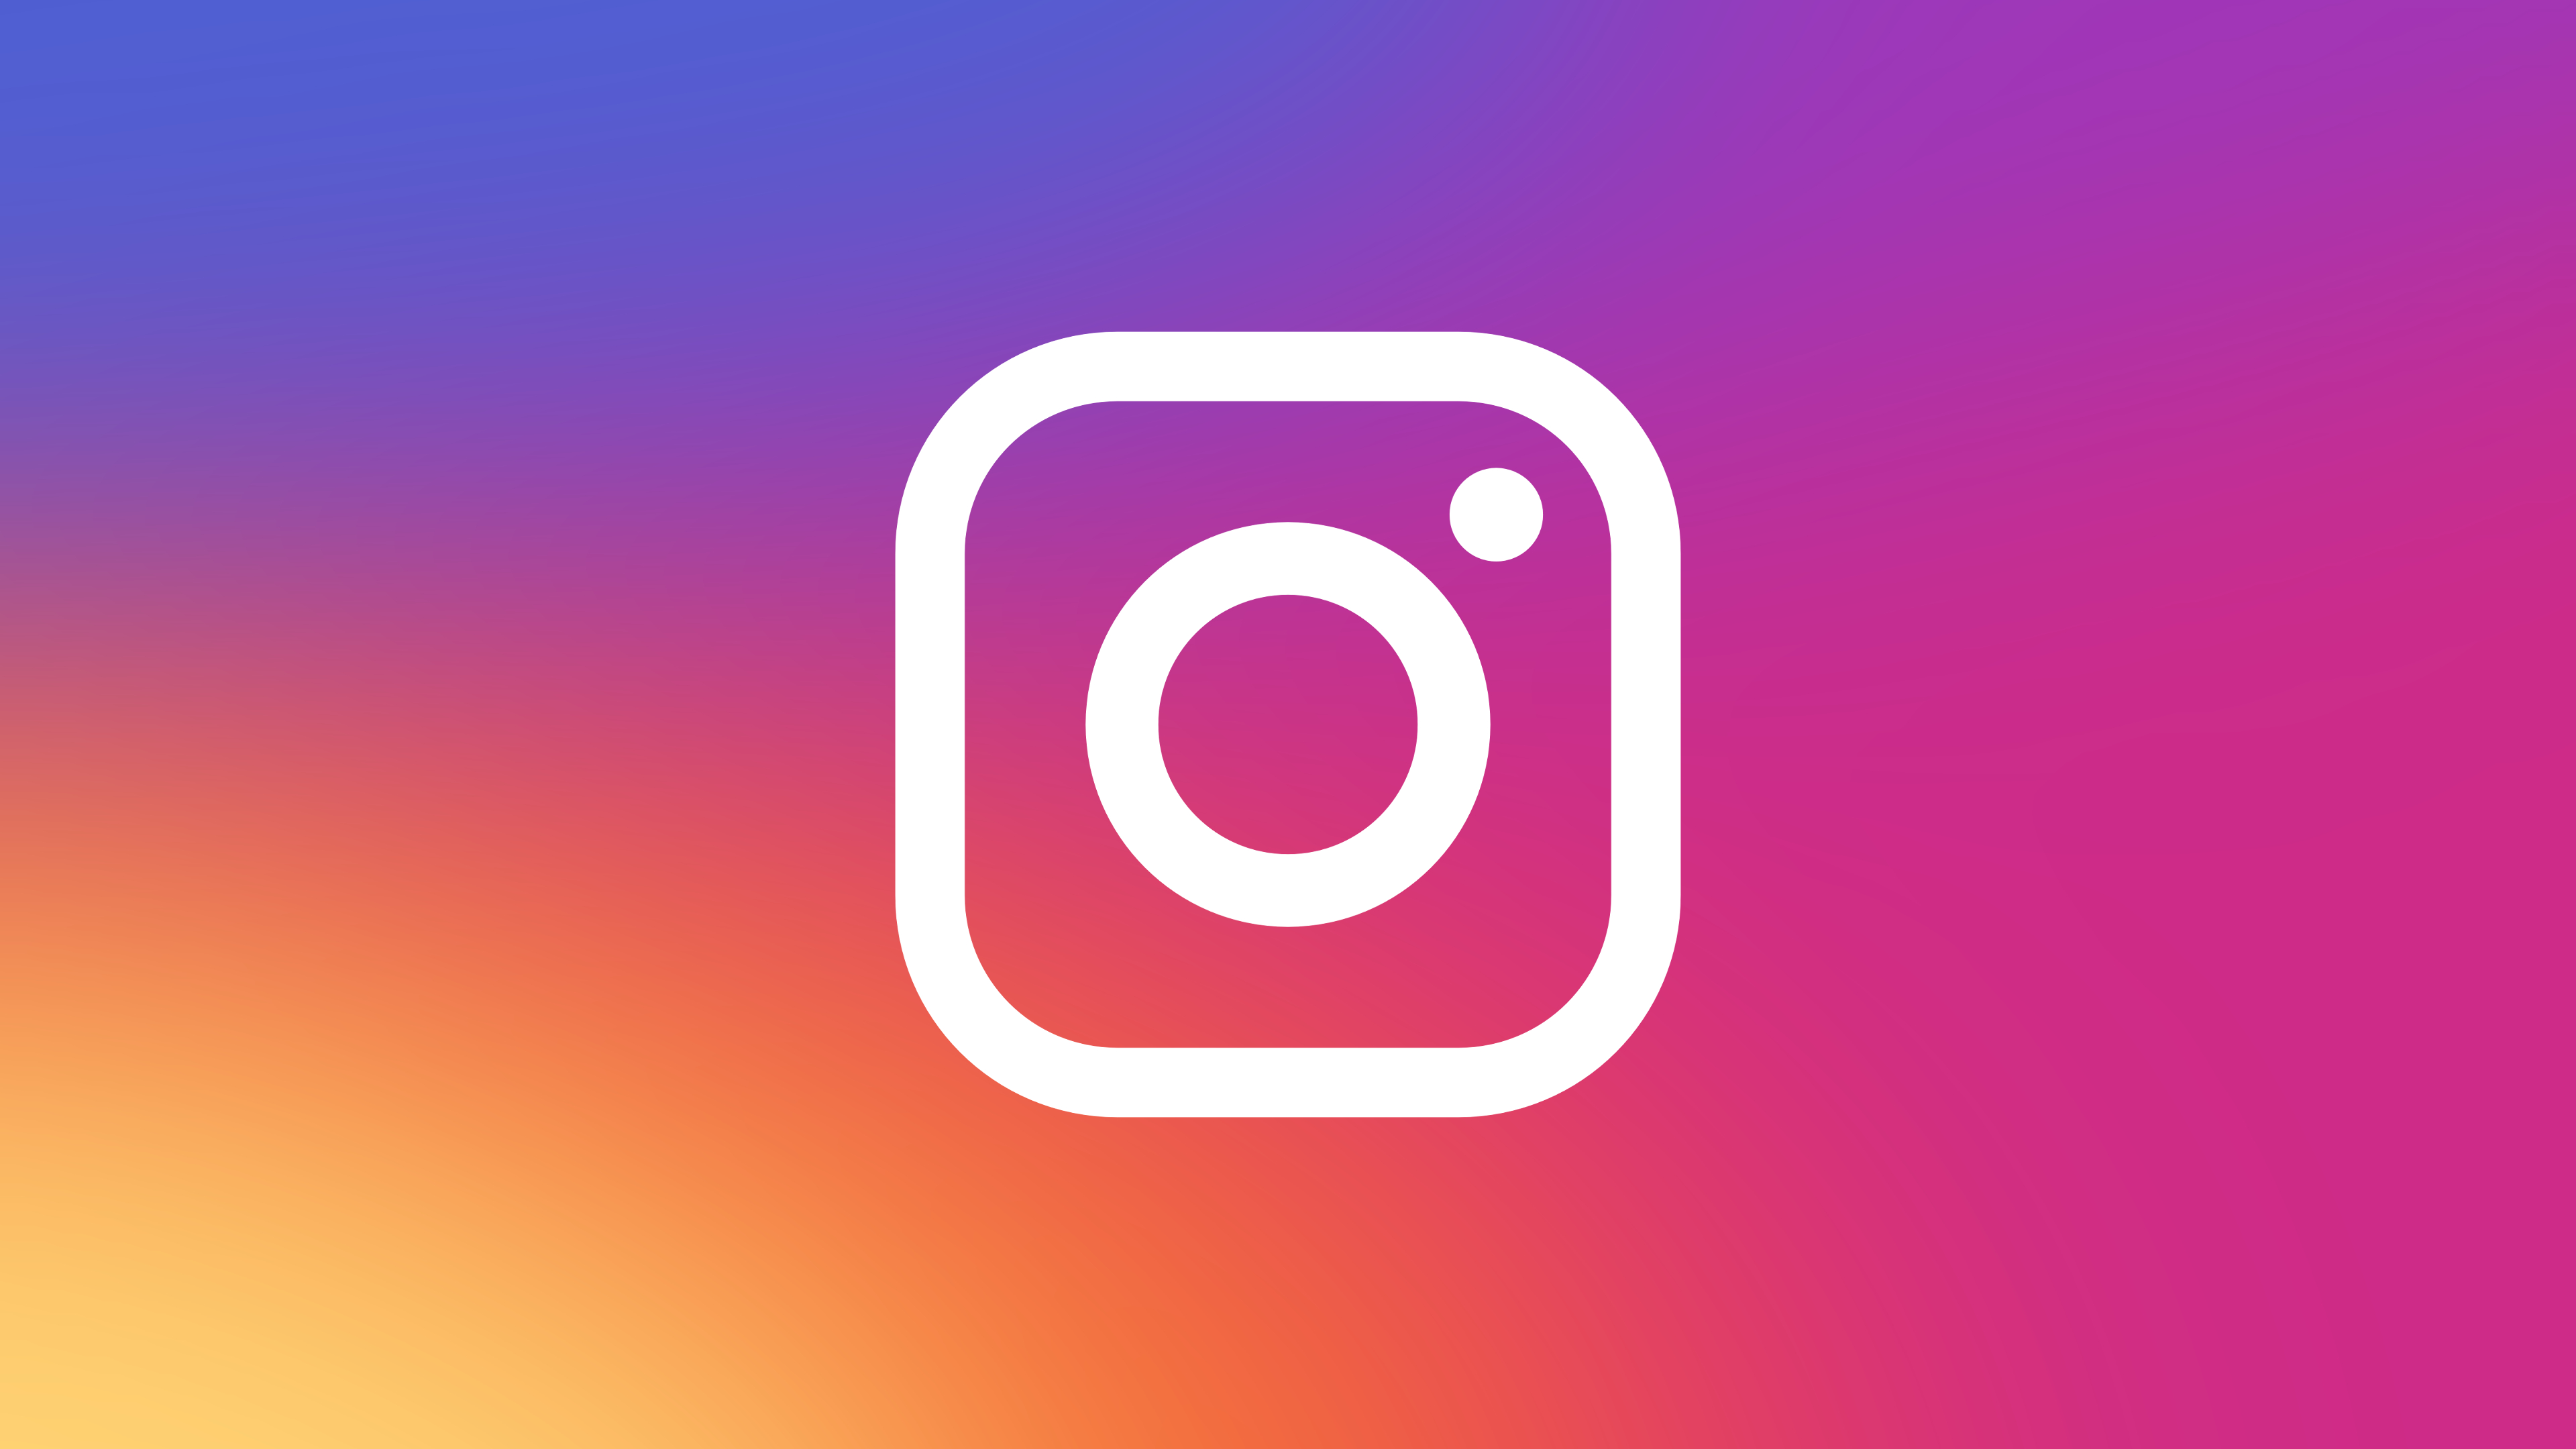 4k instagram logo wallpaper 65637